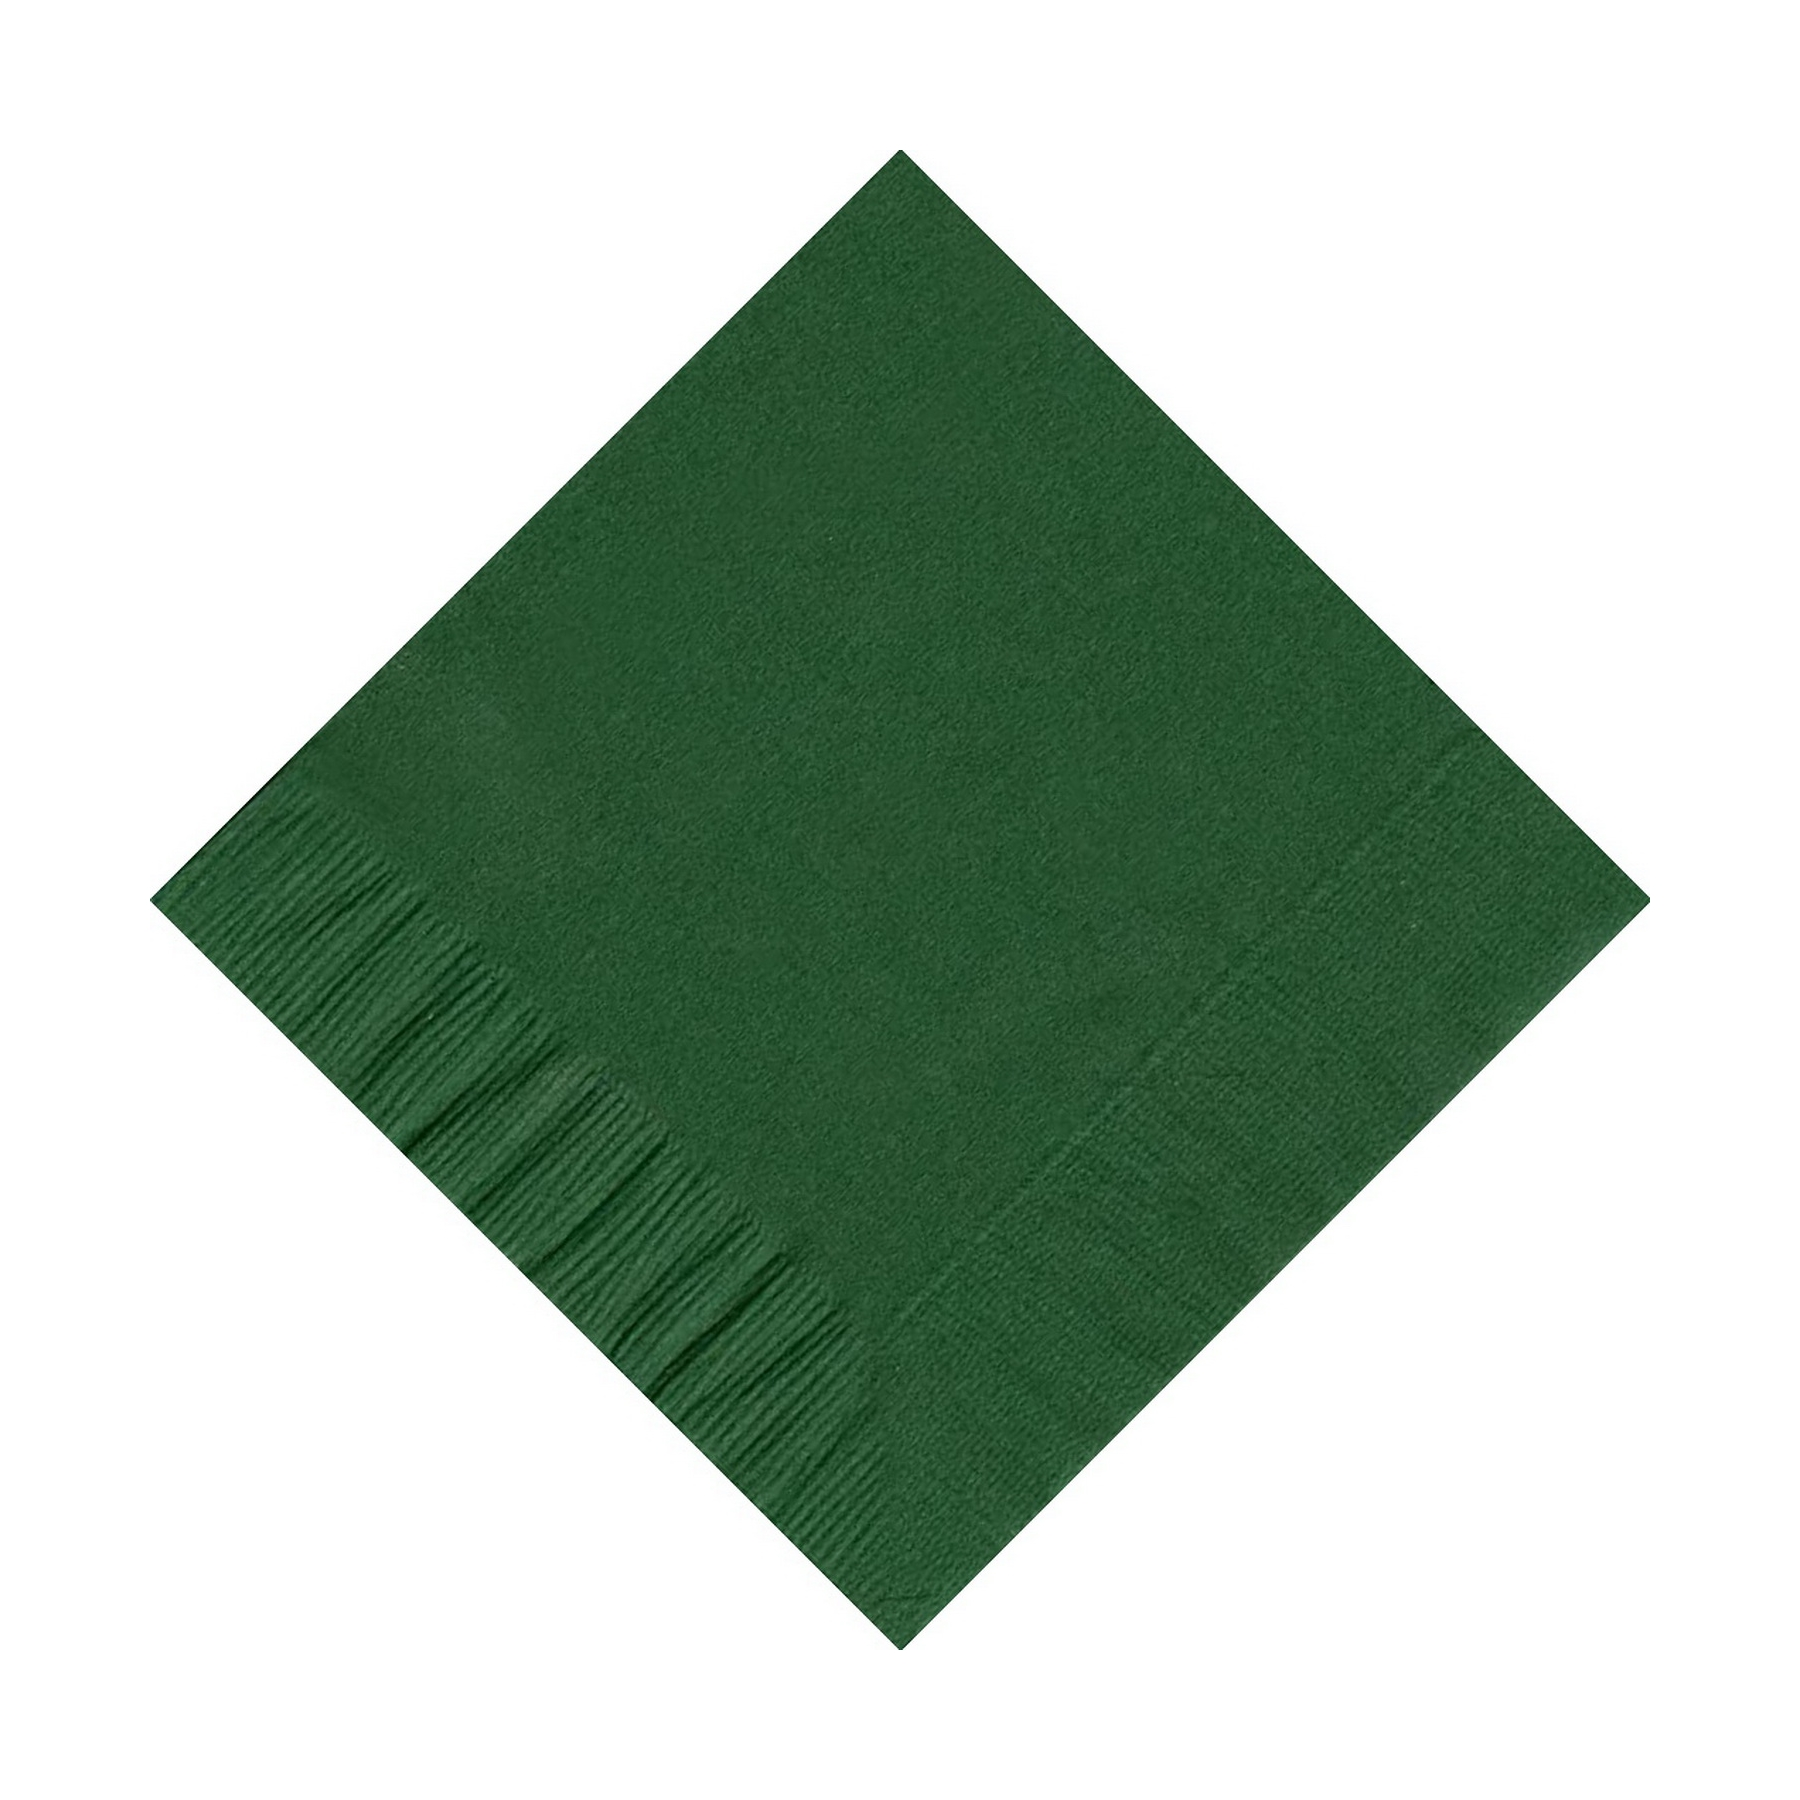 50 Plain Solid Colors Beverage Cocktail Napkins Paper Hunter Green by CREATIVE CONVERTING